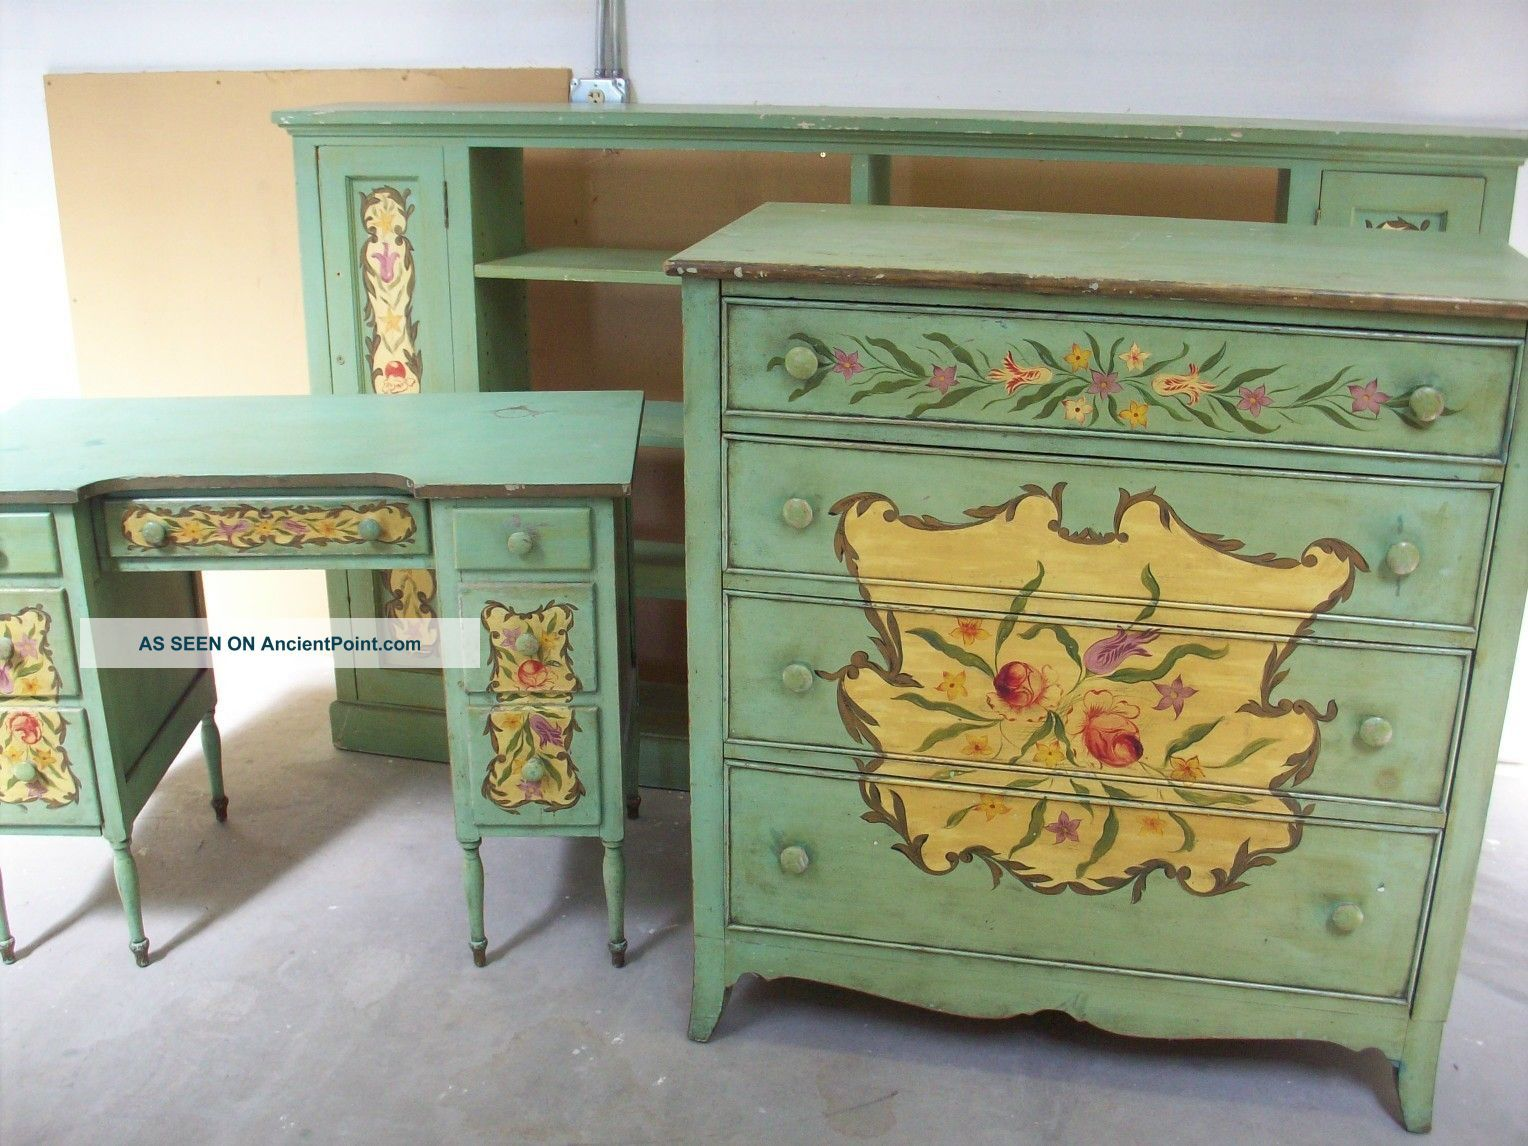 1910 Bedroom Furniture Styles Victorian Bedroom Set Carved Tole Painted 1890 1910 Childs Cottage Victorian Bedroom Set Cottage Furniture Victorian Bedroom